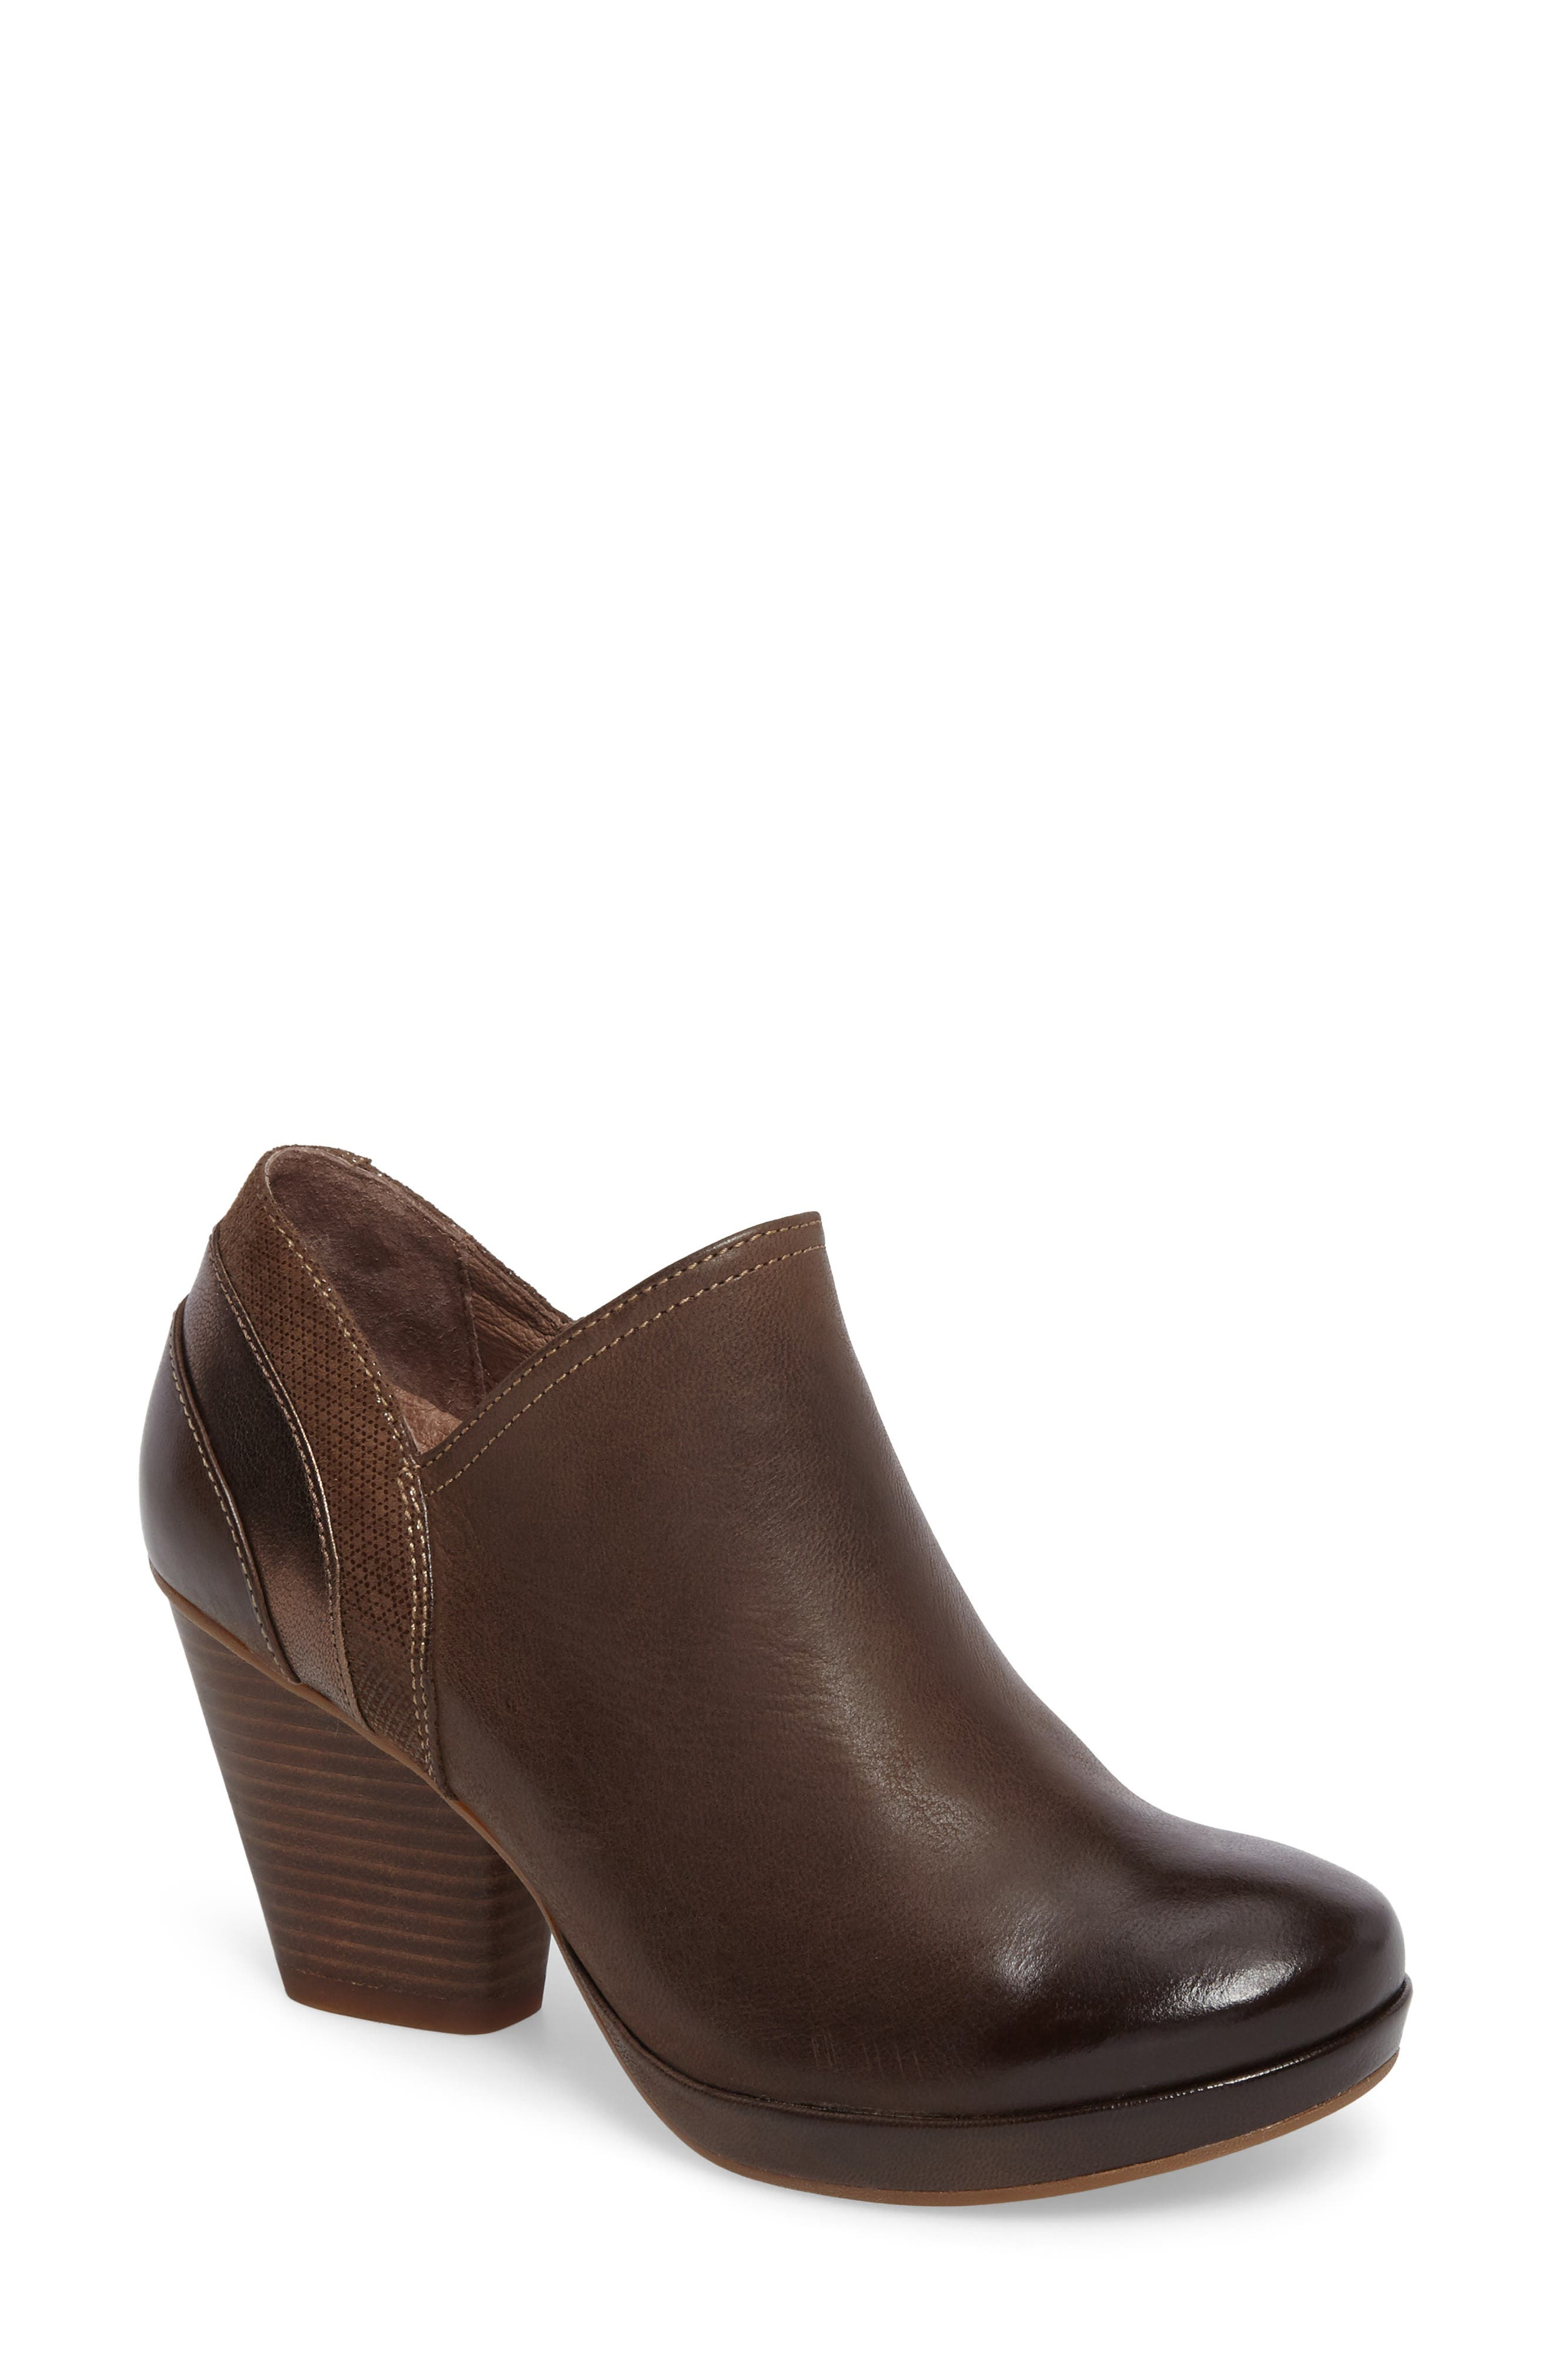 Marcia Bootie,                             Main thumbnail 1, color,                             Teak Burinished Leather